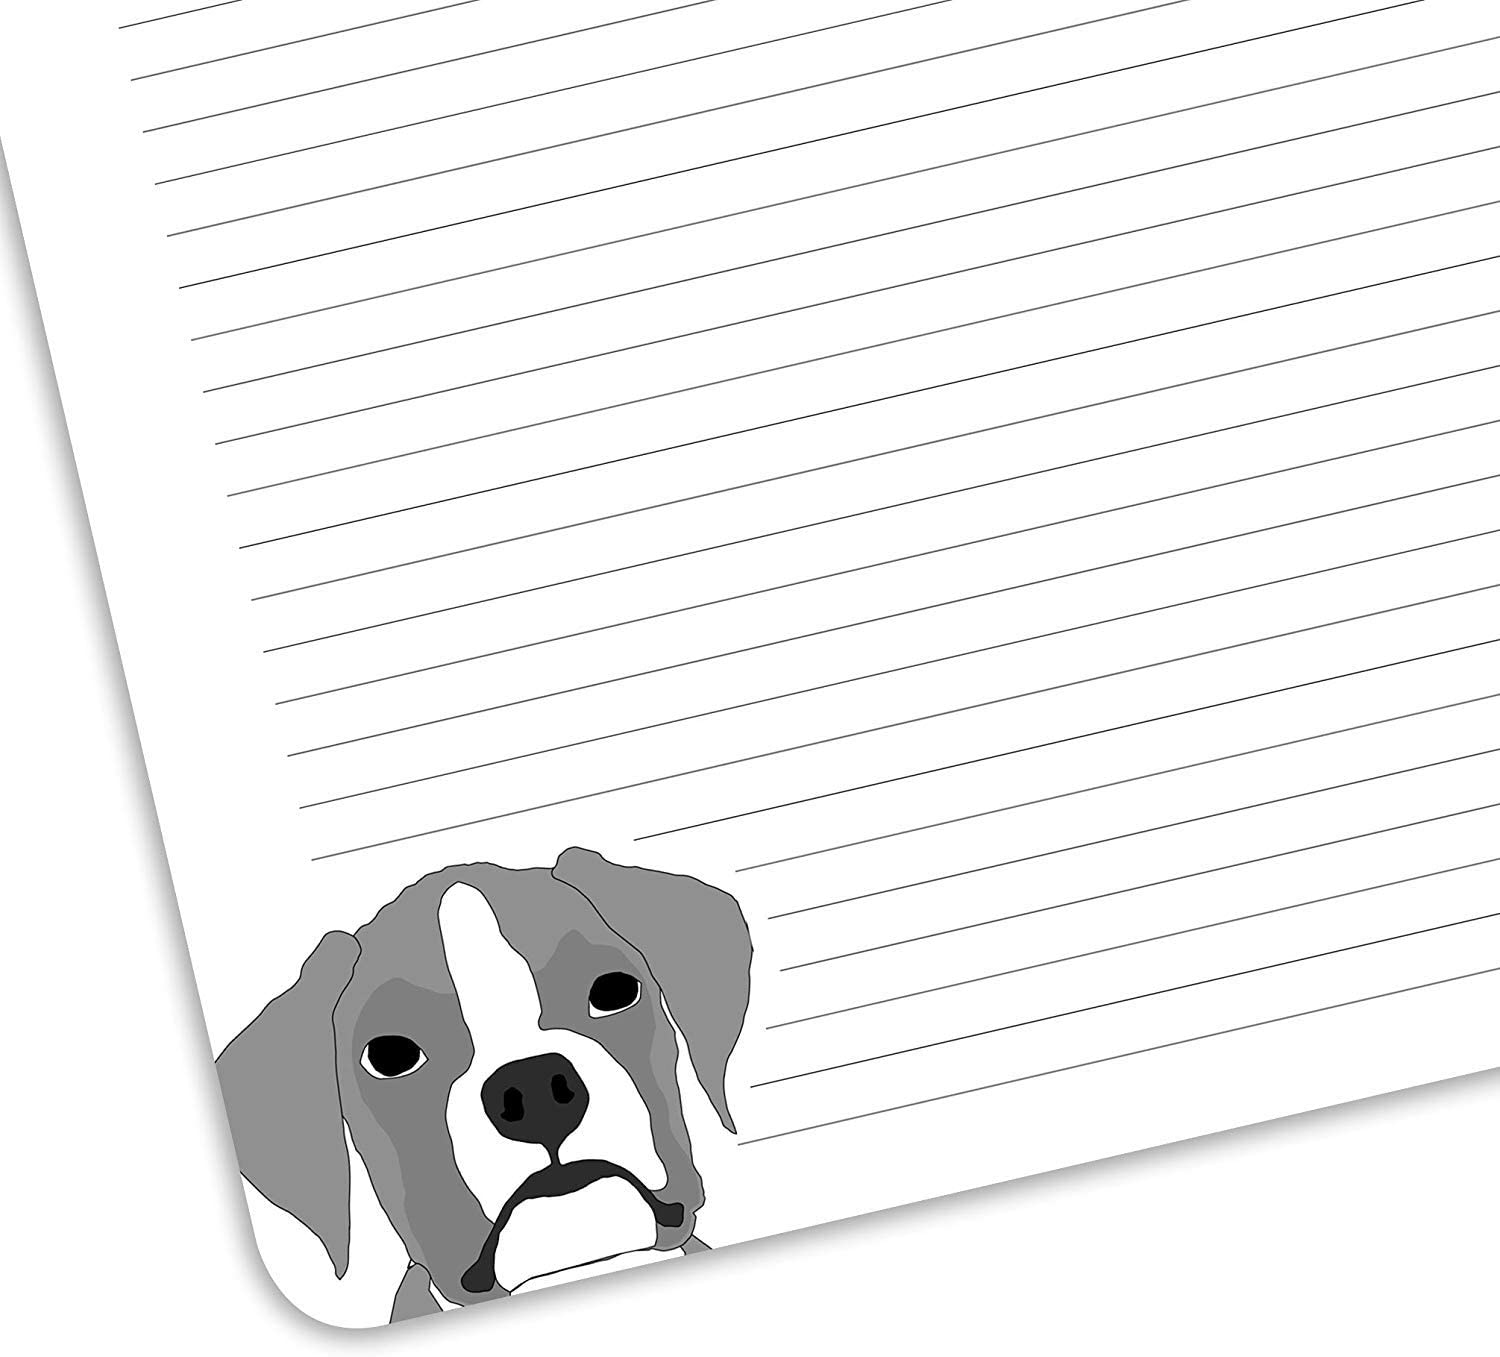 Dog Notebook 5-Pack for Dog Lovers A Great Gift for Dog Owners and Pet Lovers!